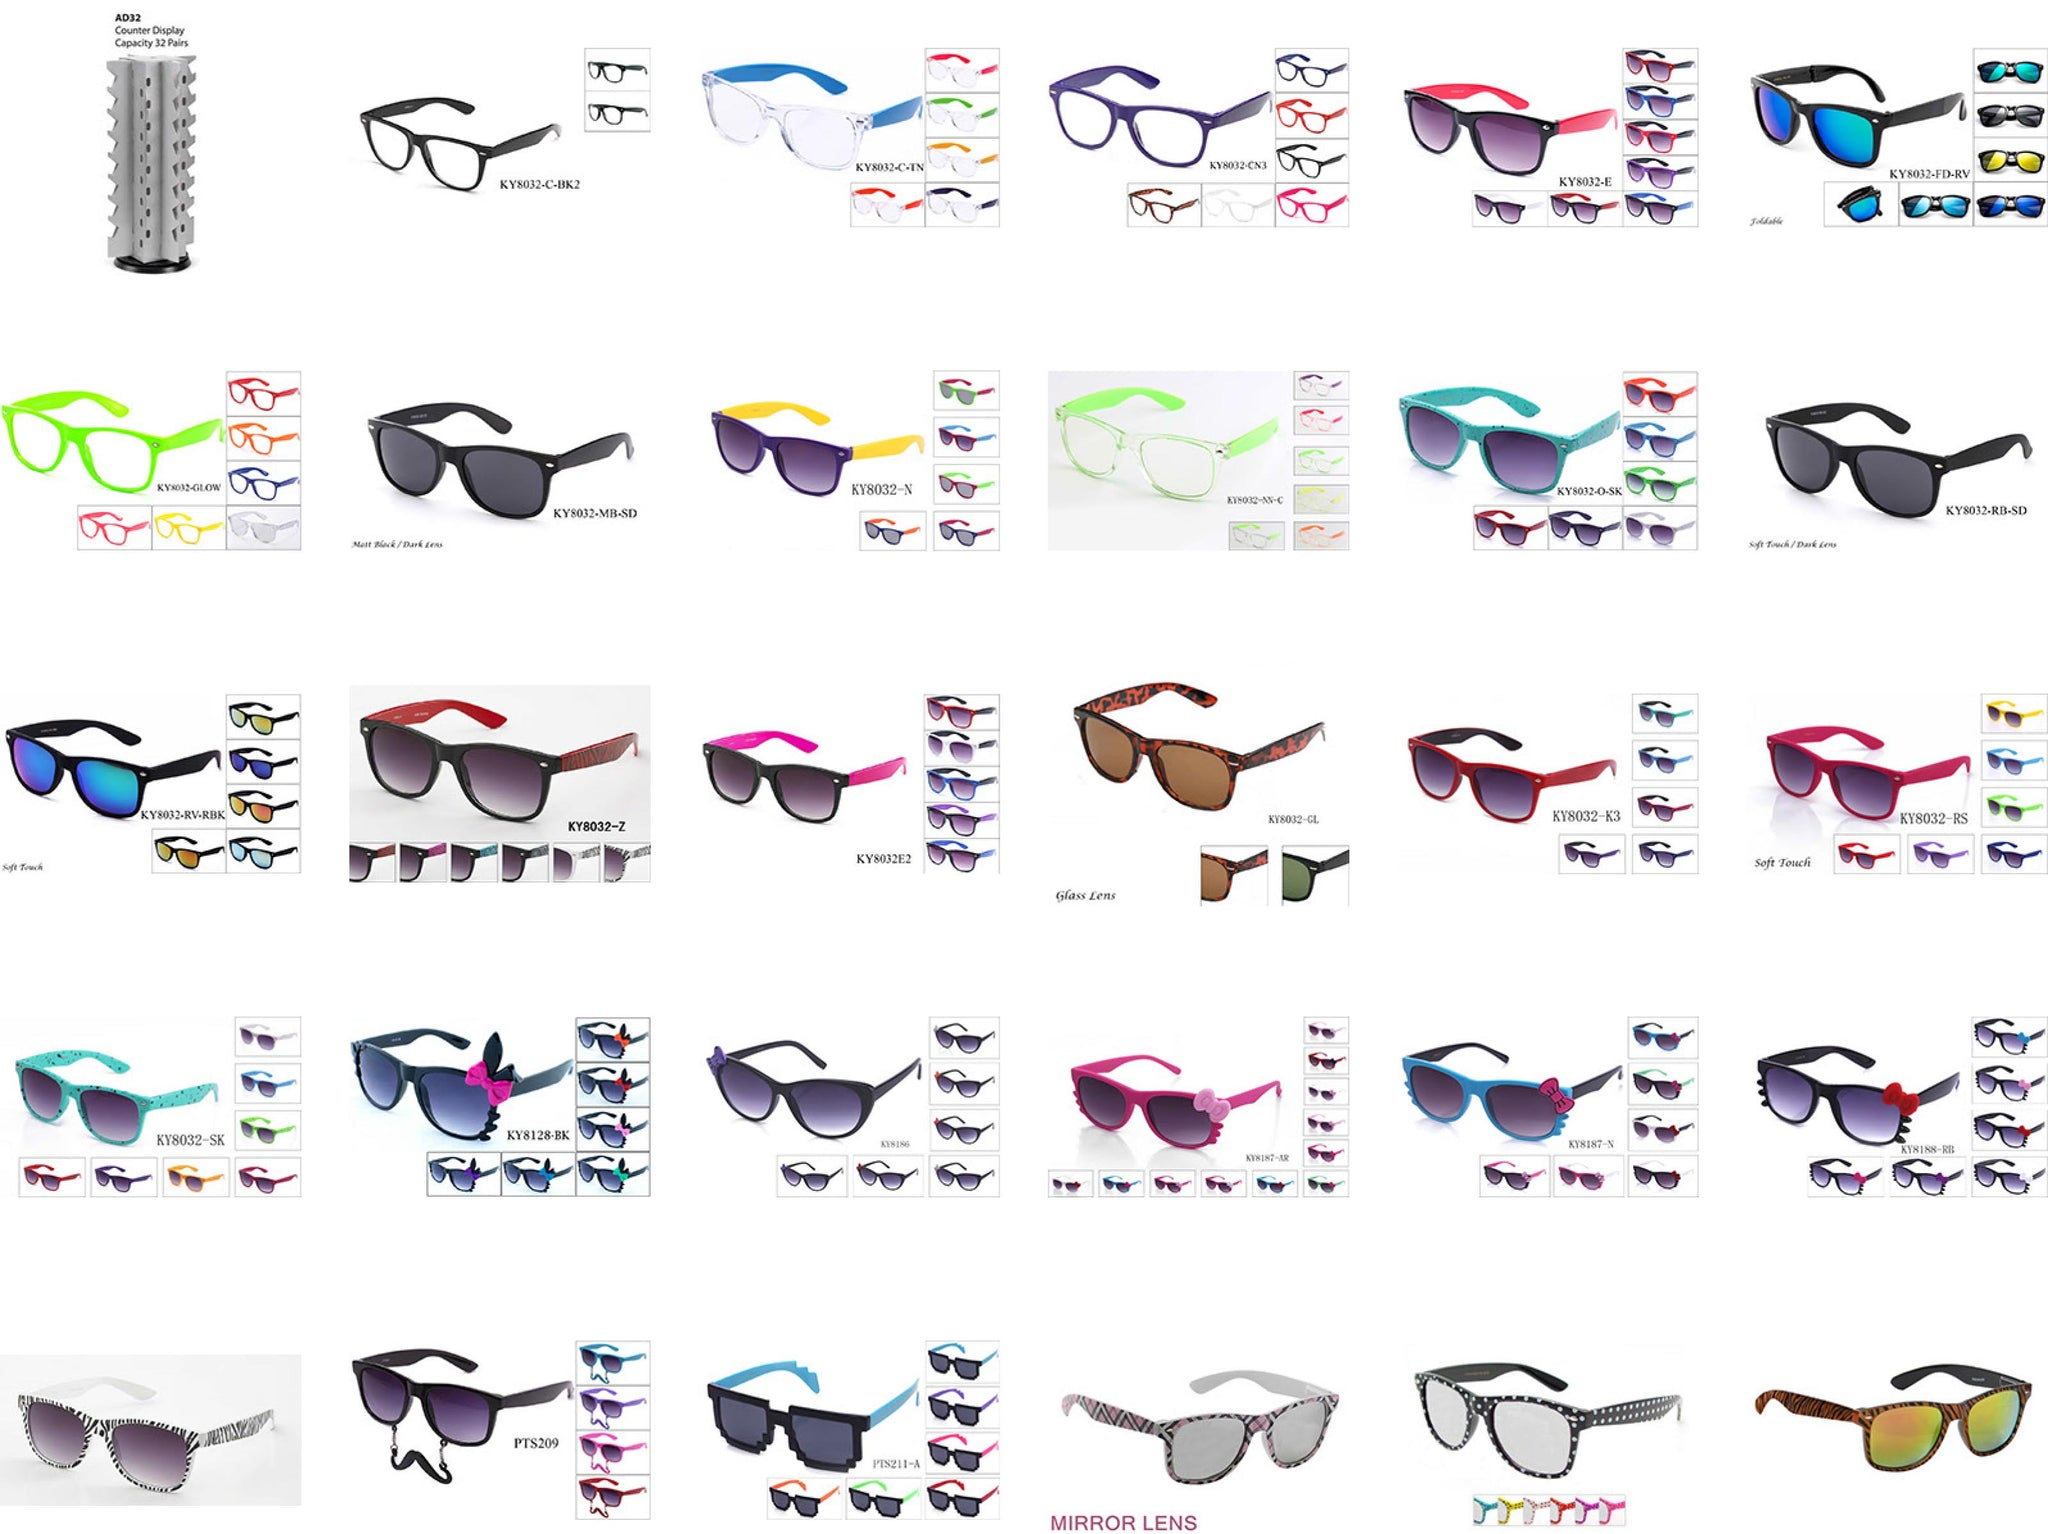 72e18a49ca41  300 Vintage   Bow Style Package 300 Pairs with Paper Display -  GOGOsunglasses